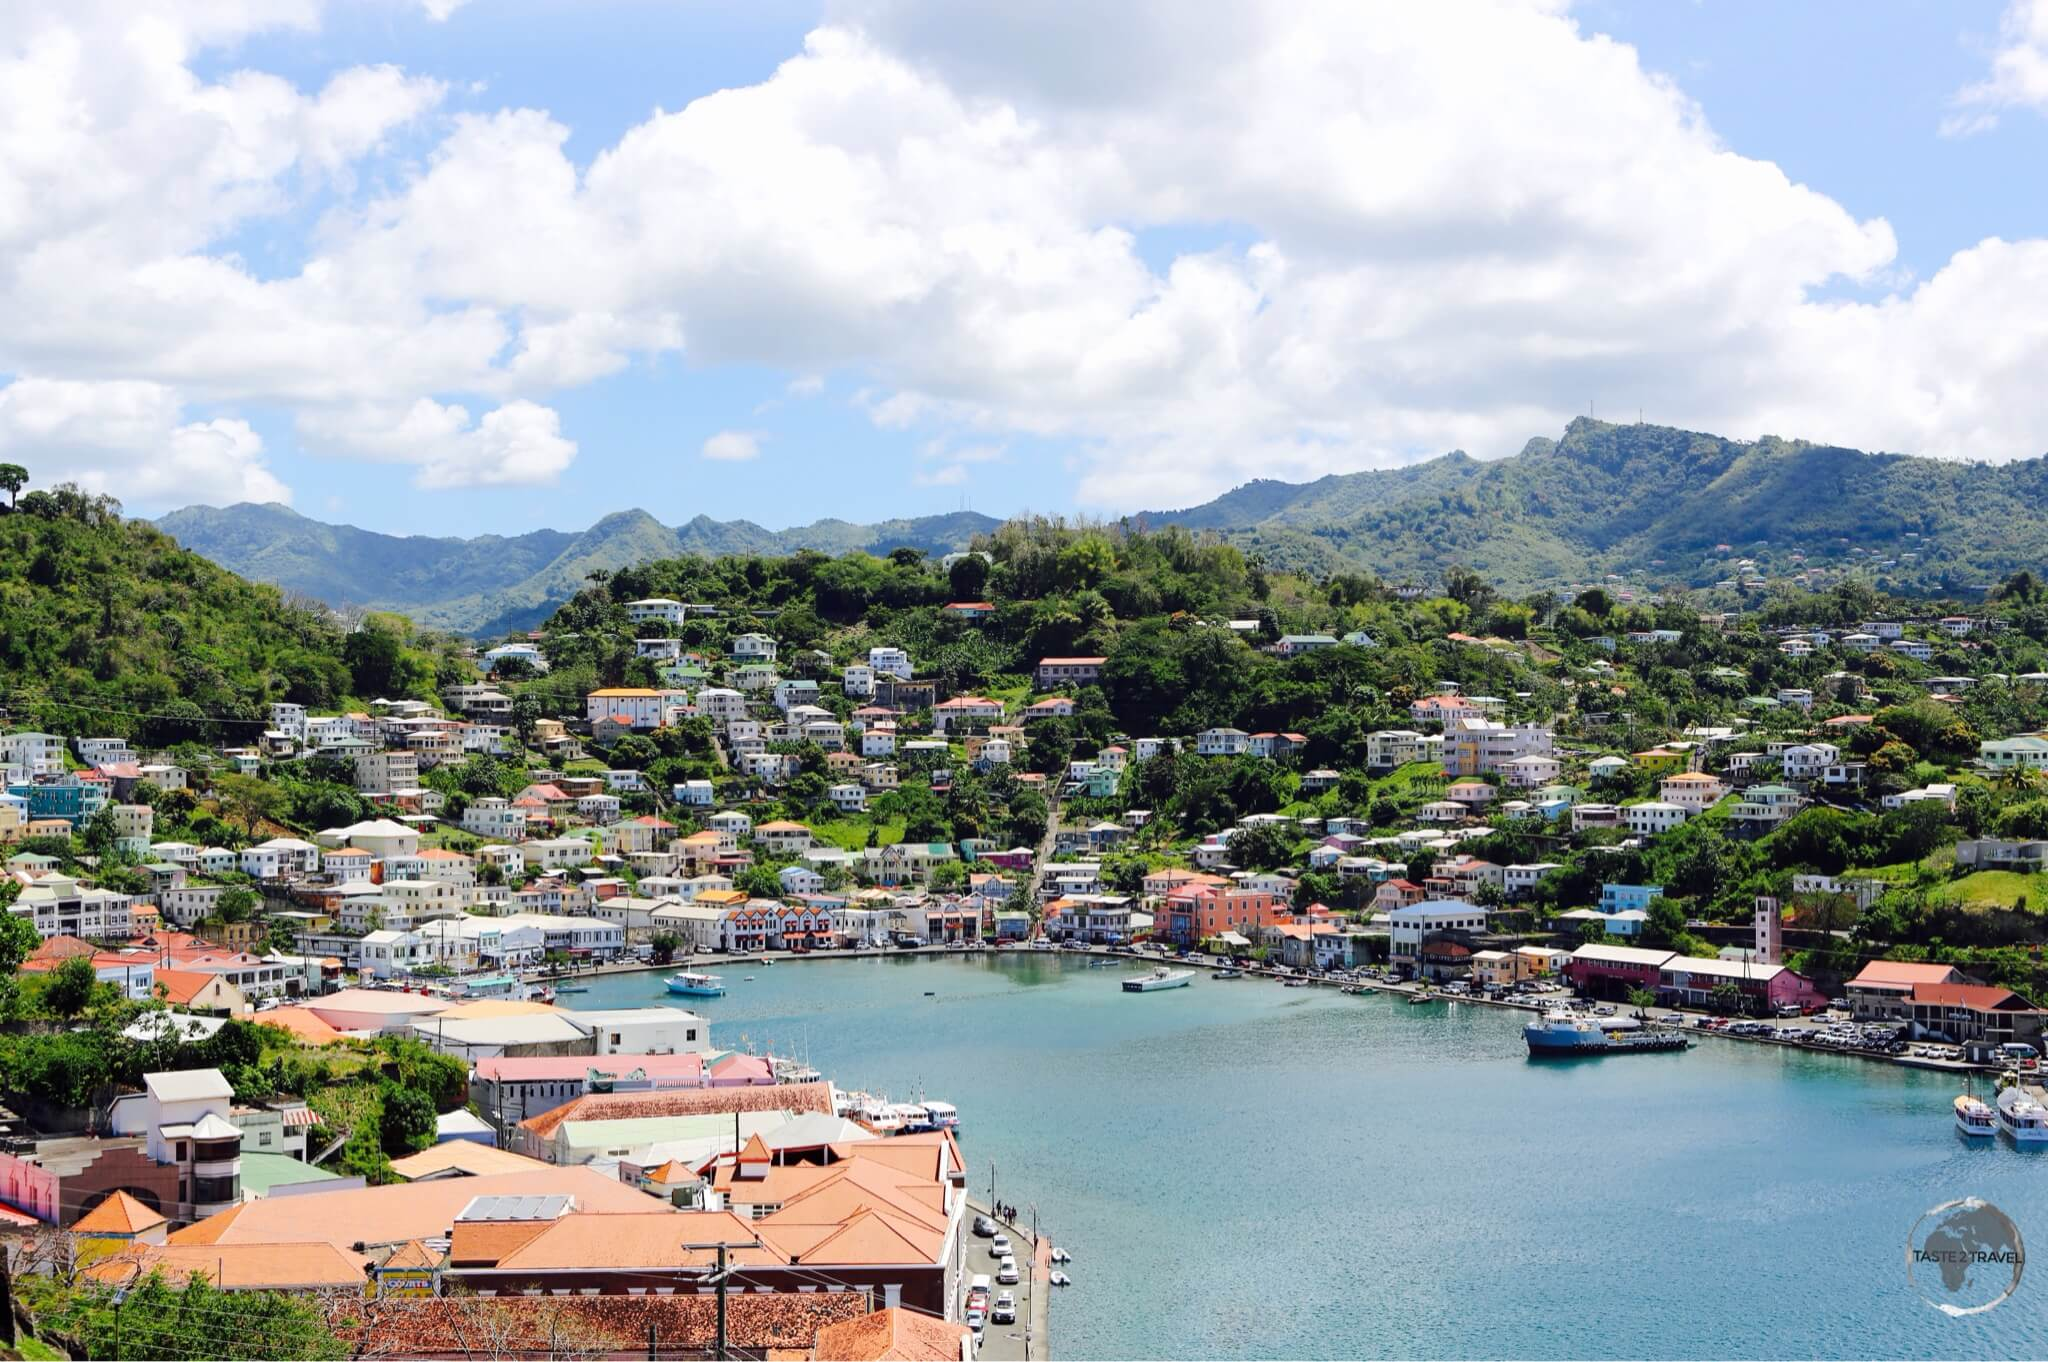 View of St. Georges, the capital of Grenada.